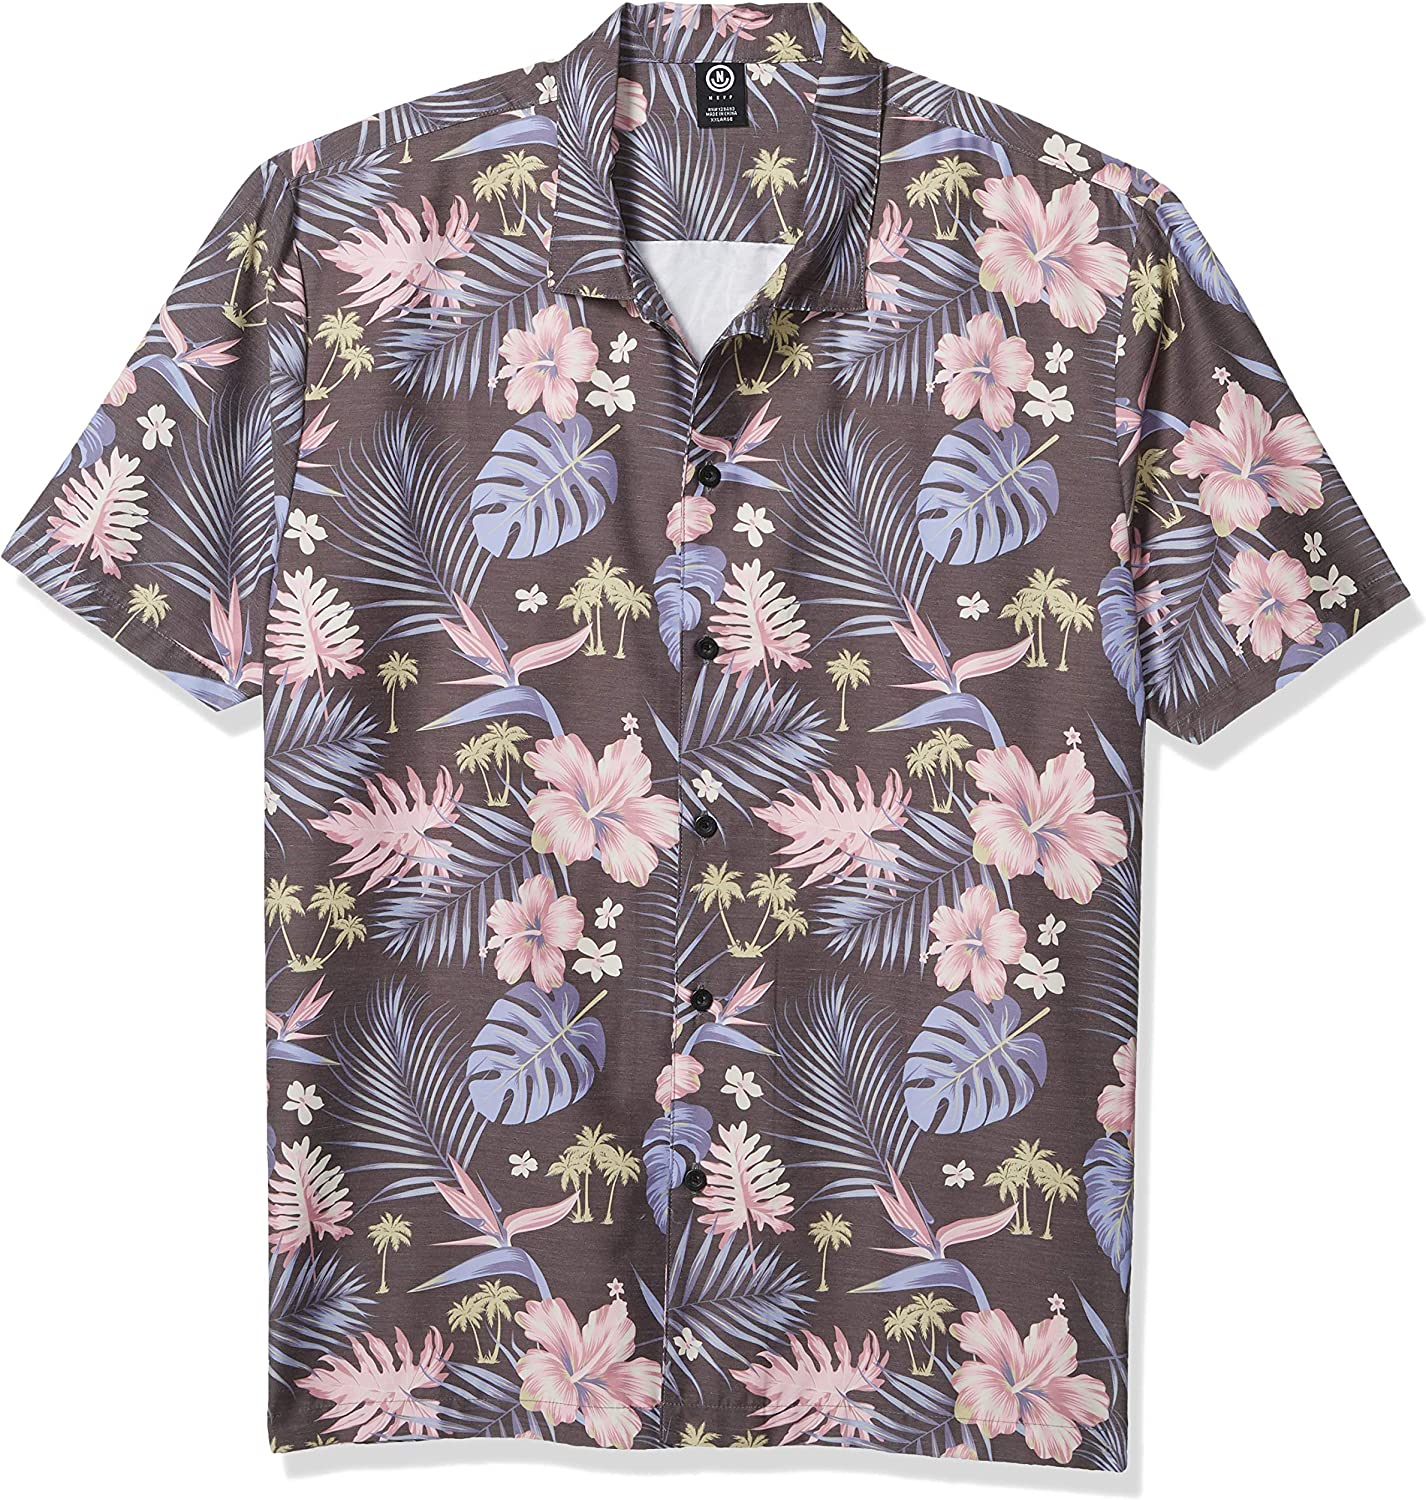 NEFF Men's Daily Button Up Hawaiian Style Patterned Pool Side Shirt